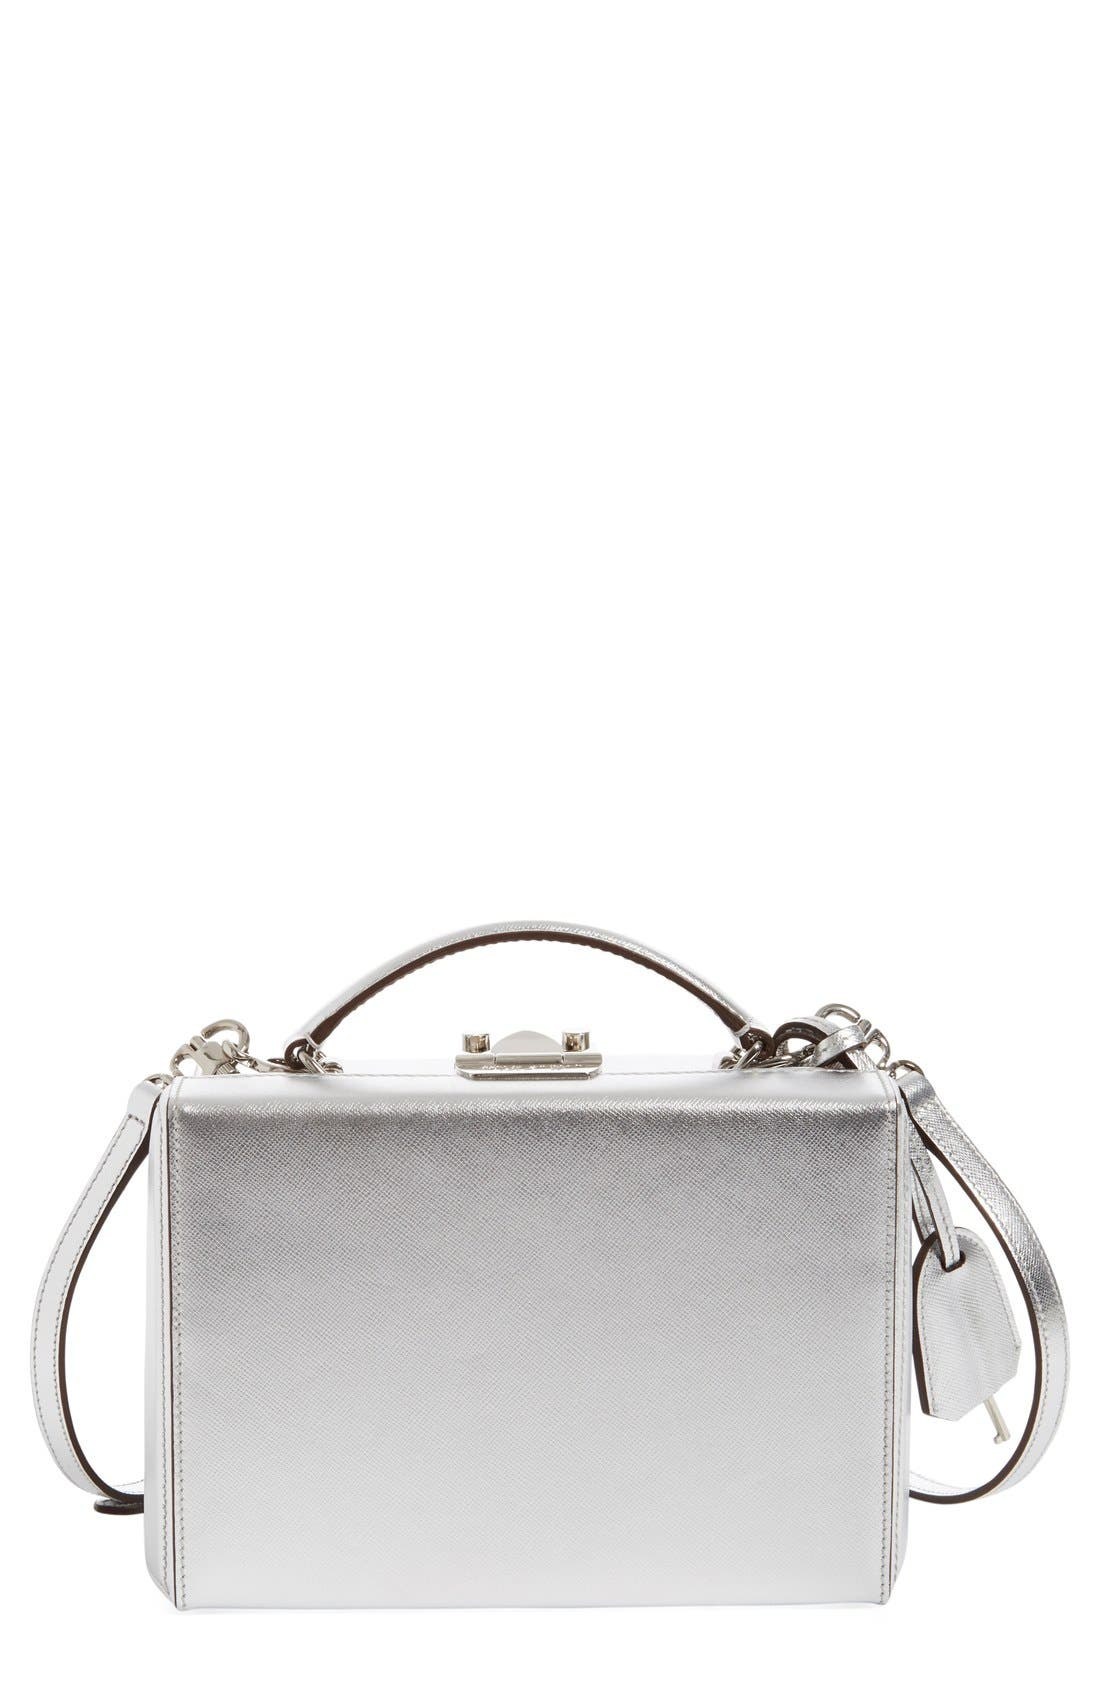 Alternate Image 1 Selected - Mark Cross 'Small Grace' Metallic Saffiano Leather Box Clutch